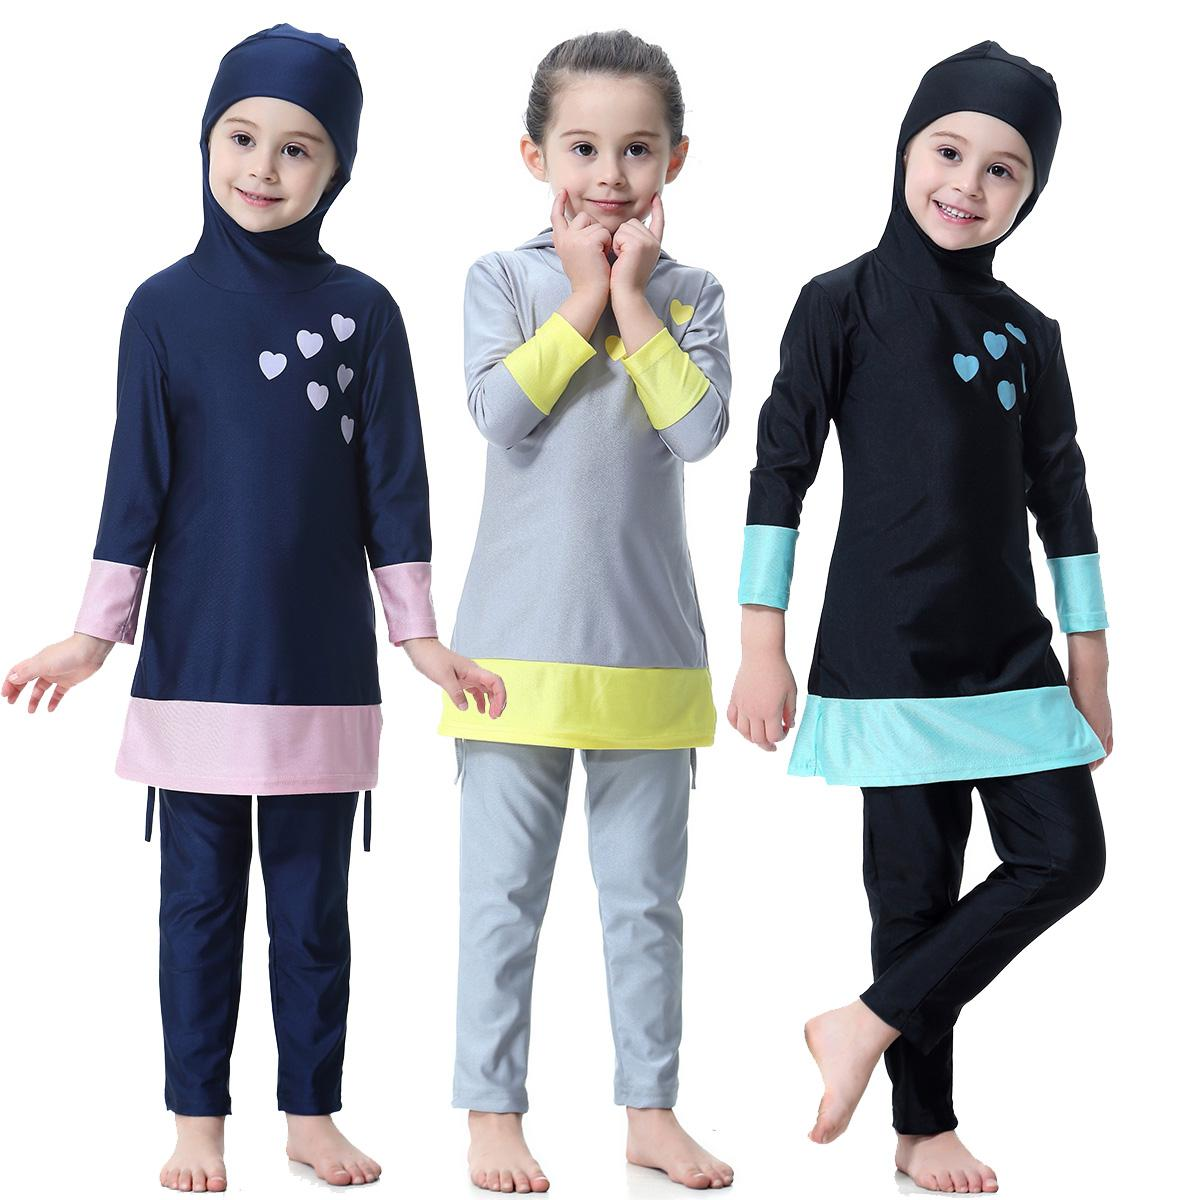 Cute Muslim Kids Girls Full Cover Swimwear Islamic Long Sleeve Arab Modest Swimsuits Swim Clothes Beachwear Children Suit Set New